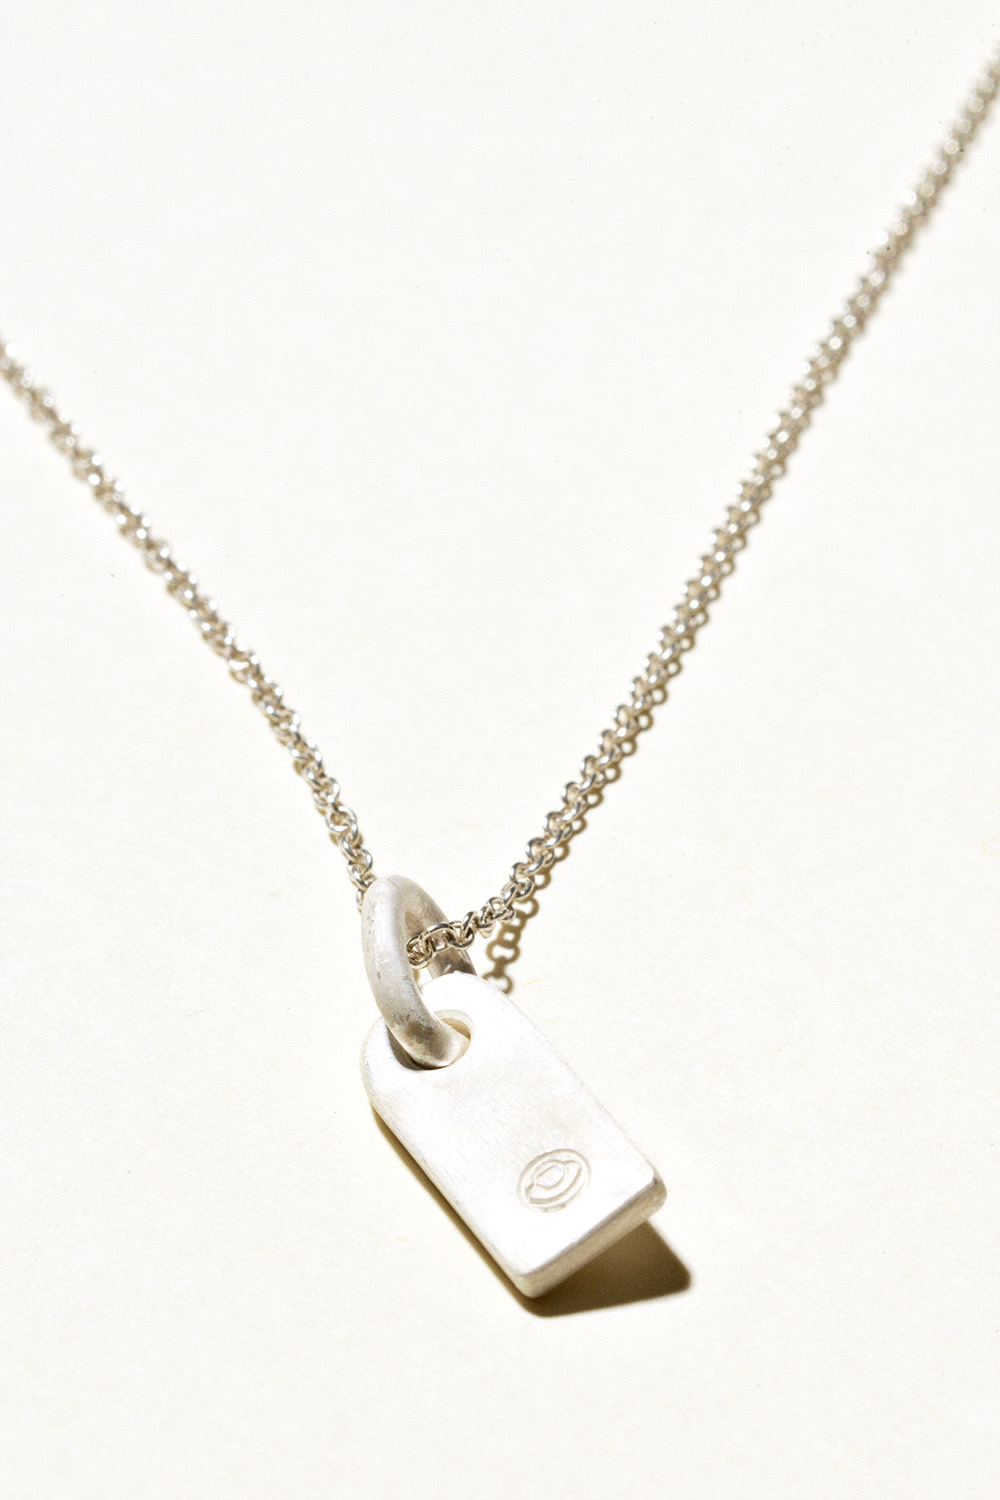 "Tag Necklace - 25mm x 8mm on a 20"" chainSterling Silver, Raw FinishHand Smithed $100"